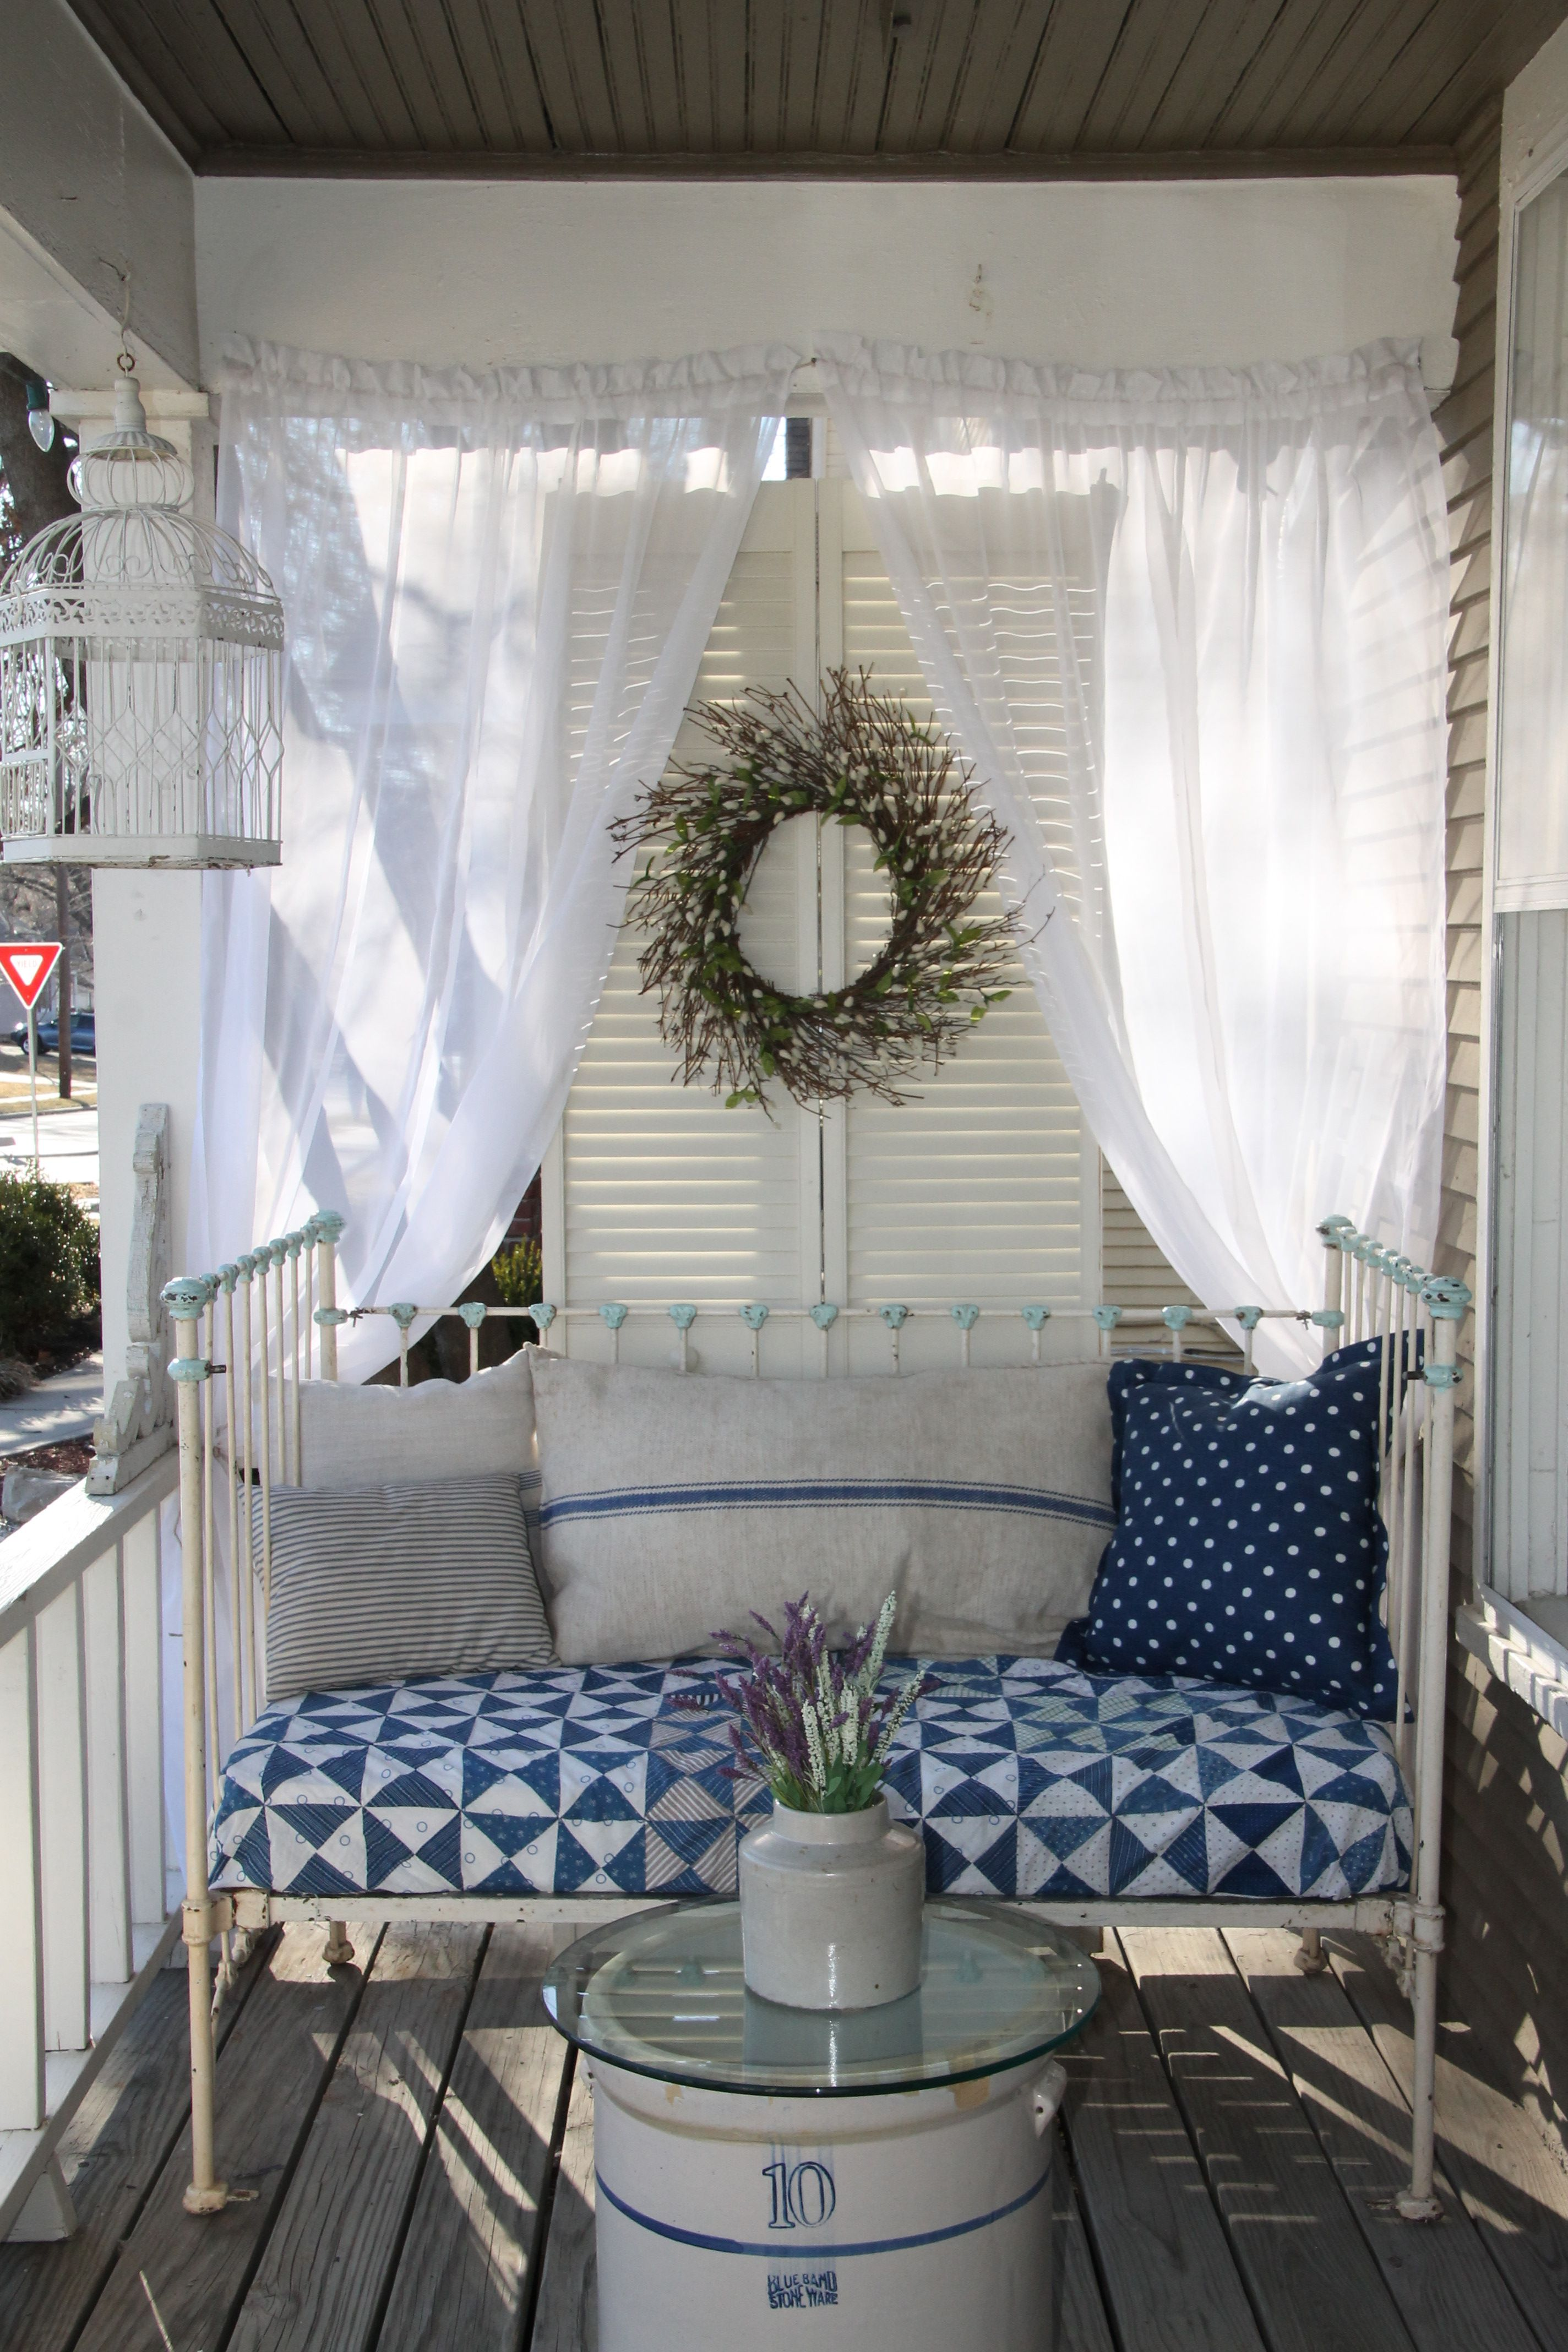 sunbrella all porch fit comes curtains year clear to country on colors pin installing and many drop your live by custom fabric made out long patterns in